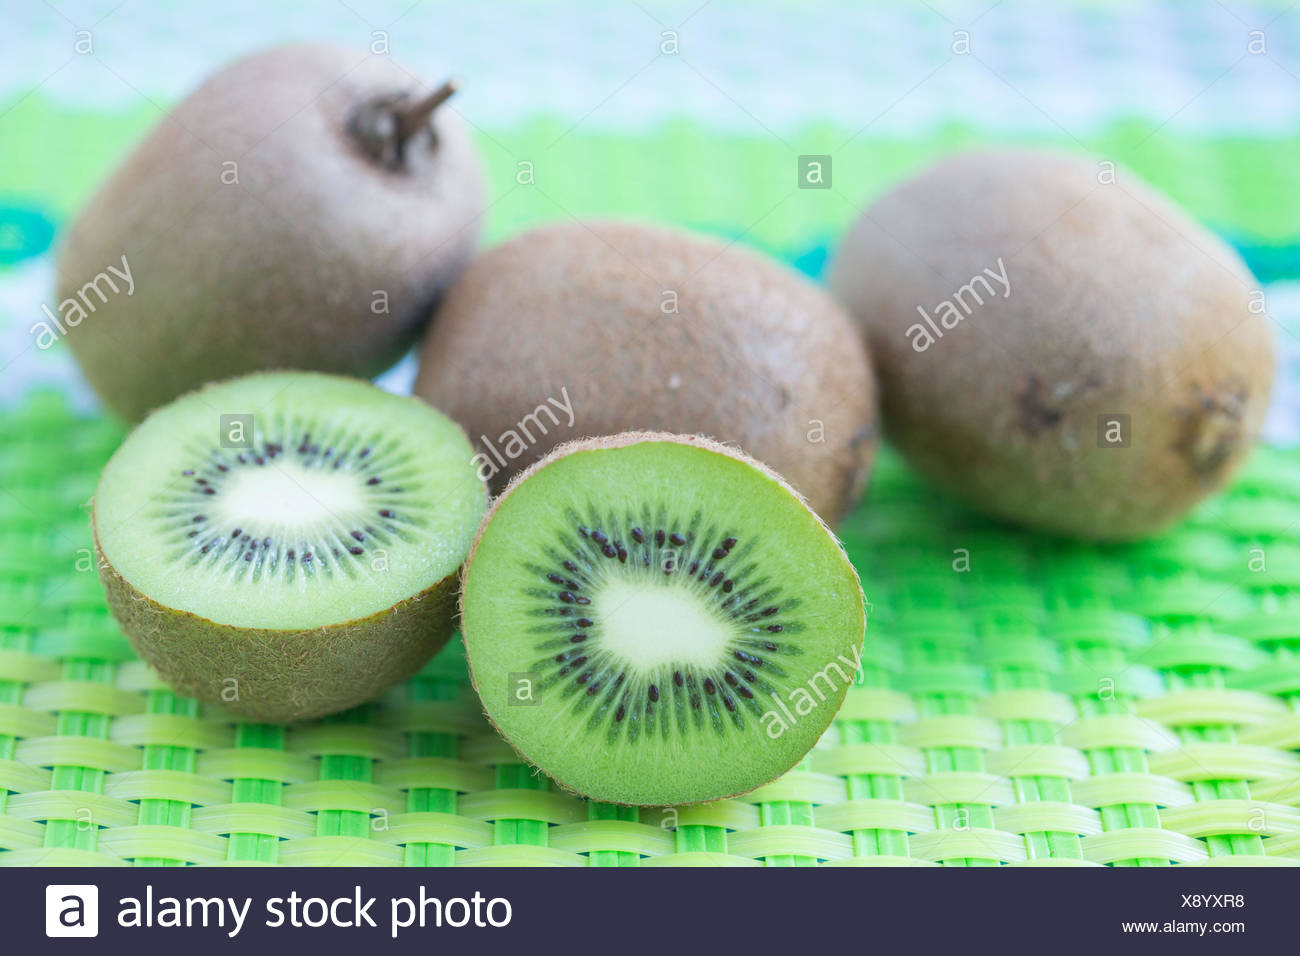 Kiwi fruit. Stock Photo